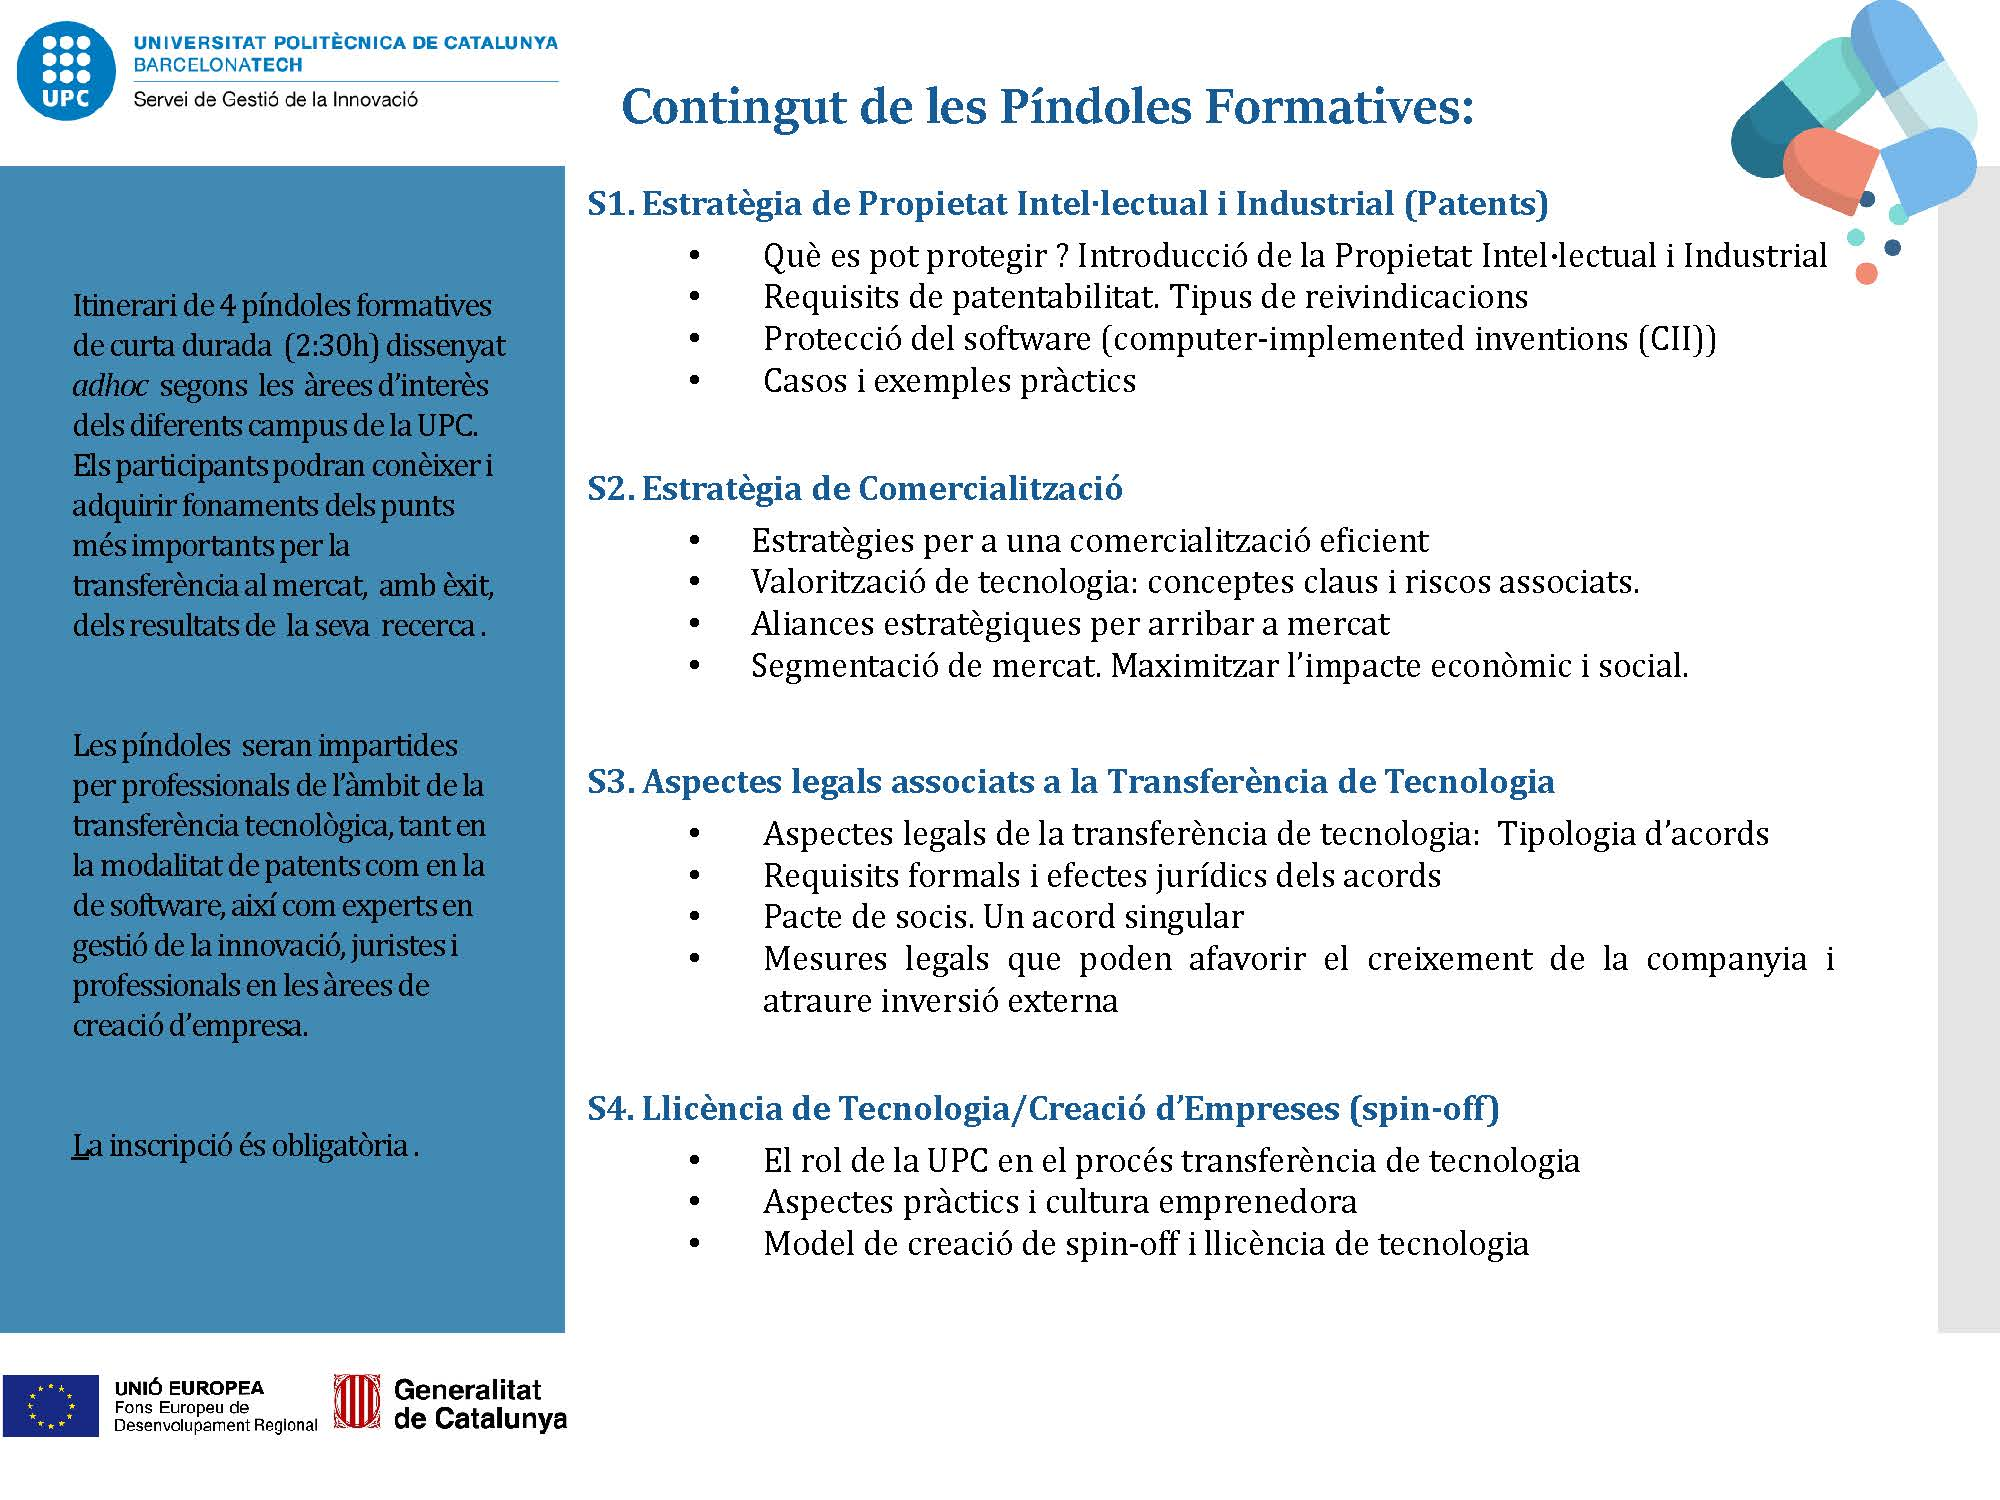 PPT-Pindoles formatives 2019-20-2_Page_2.jpg